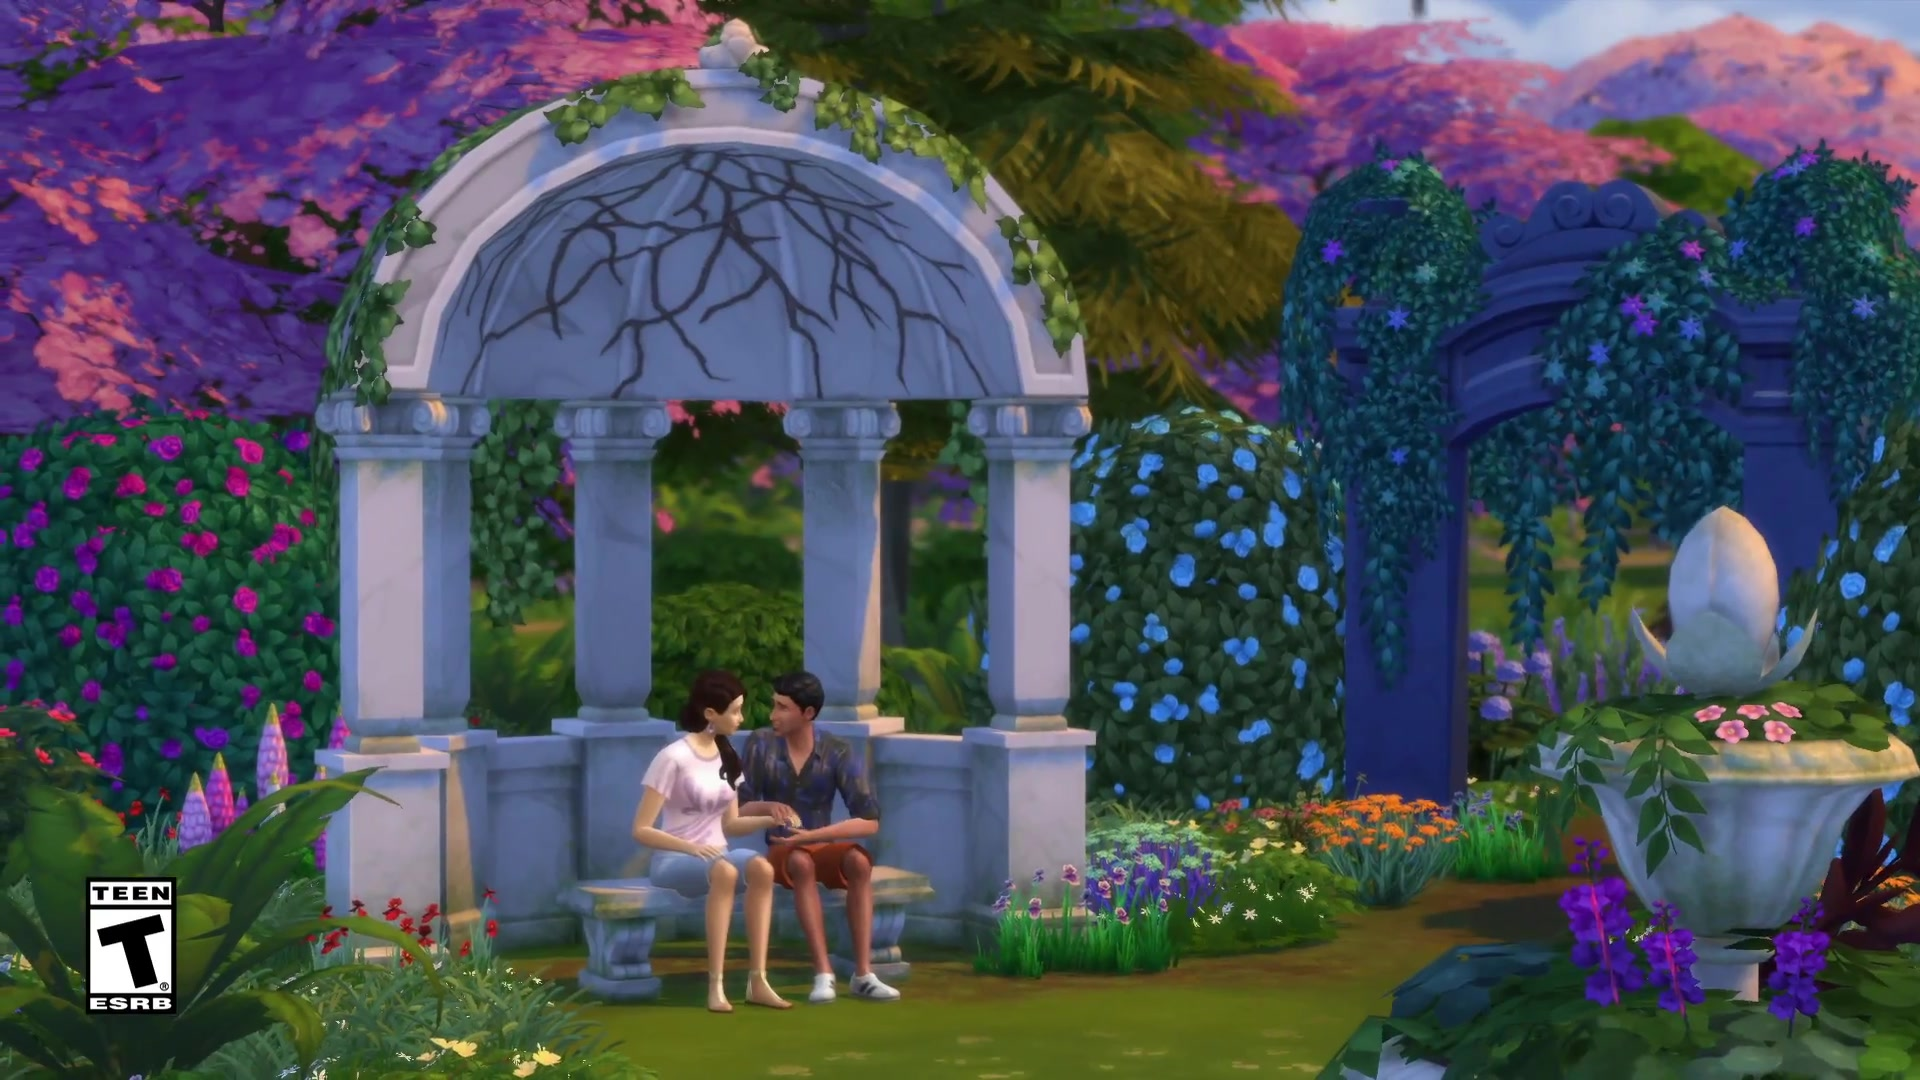 Sims 4 Images The Sims 4 Romantic Garden Stuff Hd Wallpaper And